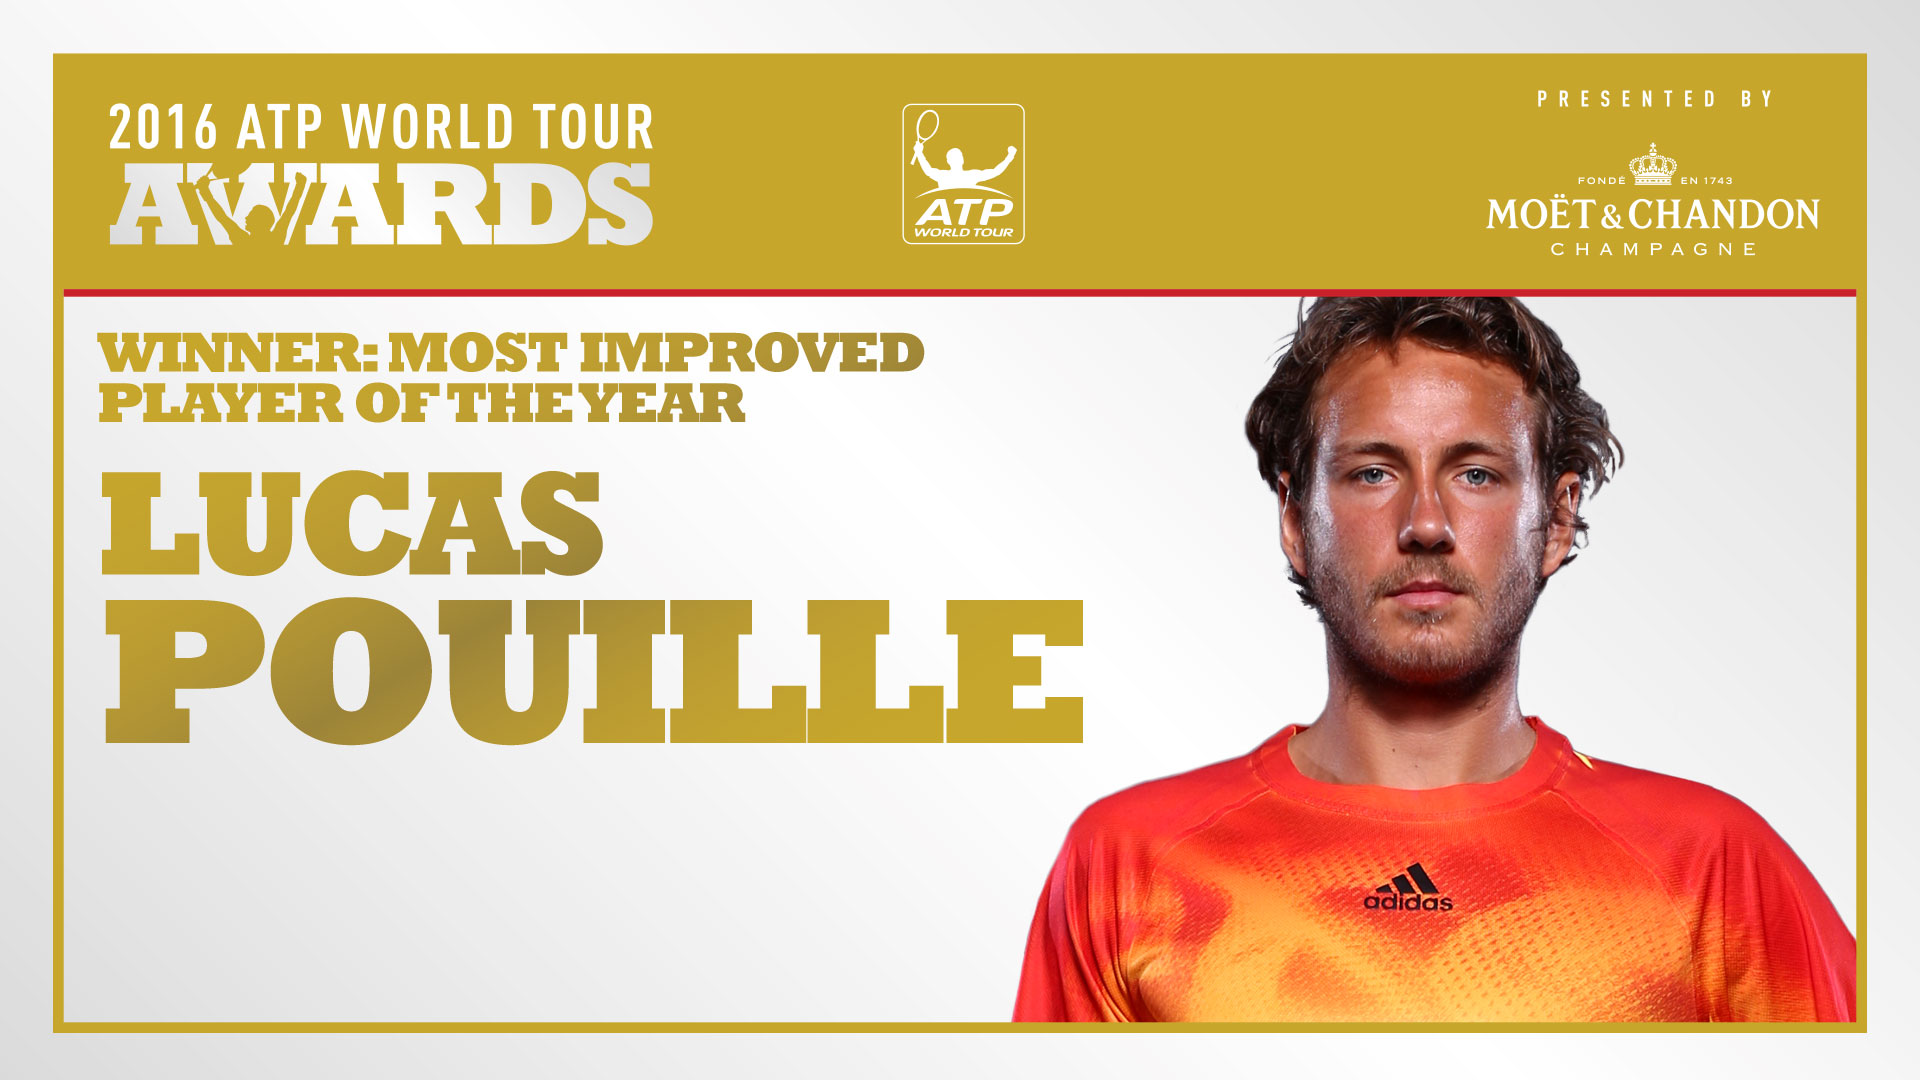 pouille honored as most improved player of the year atp awards 2016